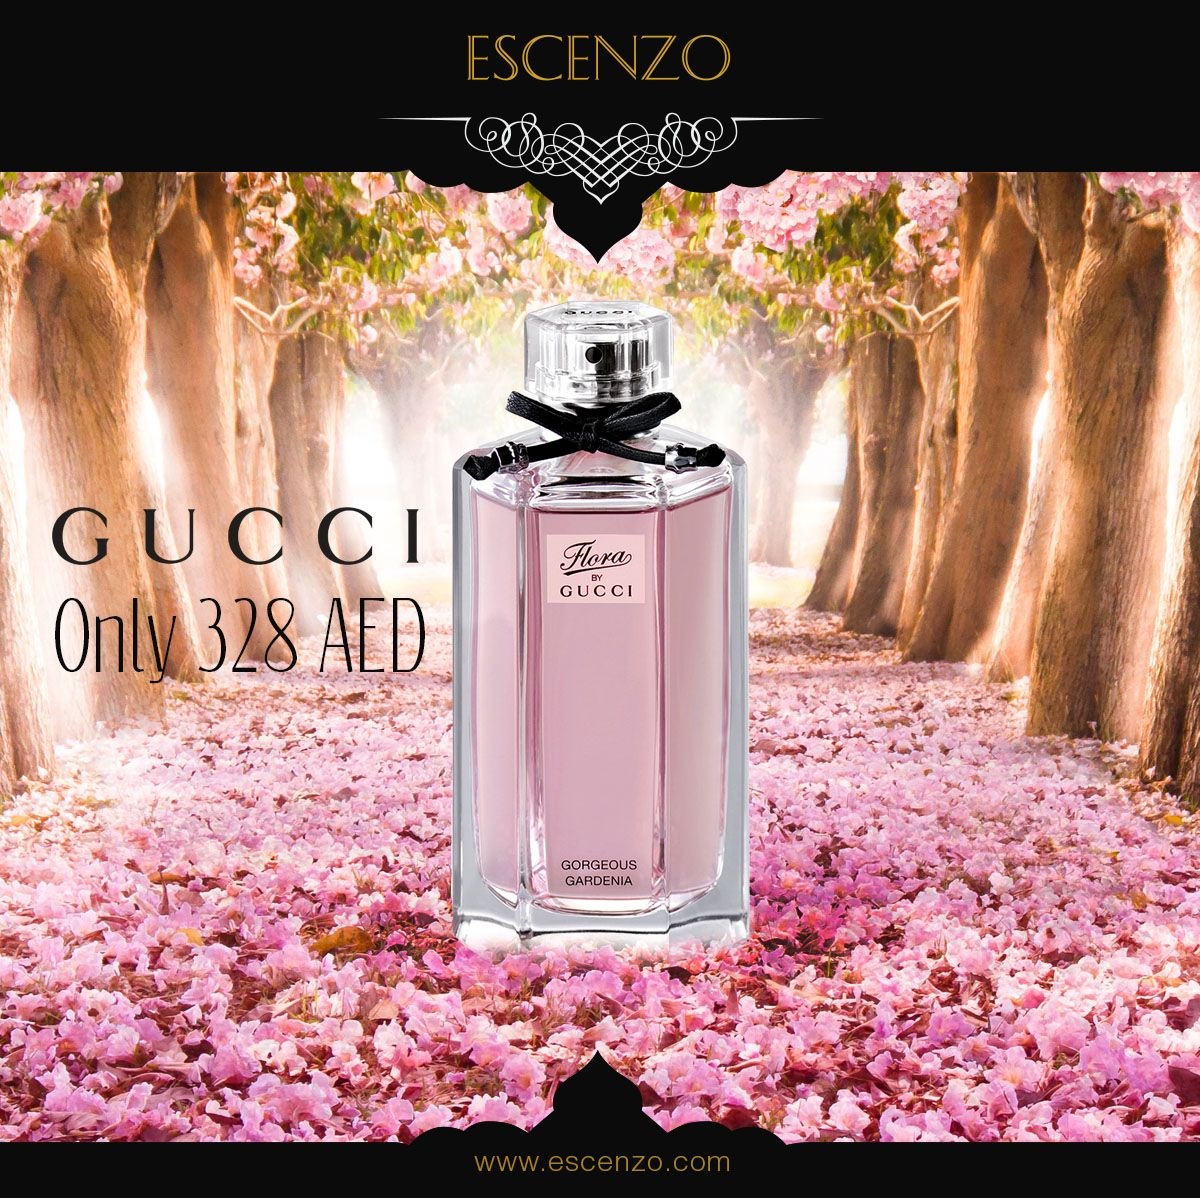 Buy Gucci Flora Gorgeous Gardenia Perfume 100ml For Women For Only 328 Aed اشتري عطر غوتشي فلورا جورجيوس جاردينيا 100 مل للن Perfume Gucci Perfume Best Perfume